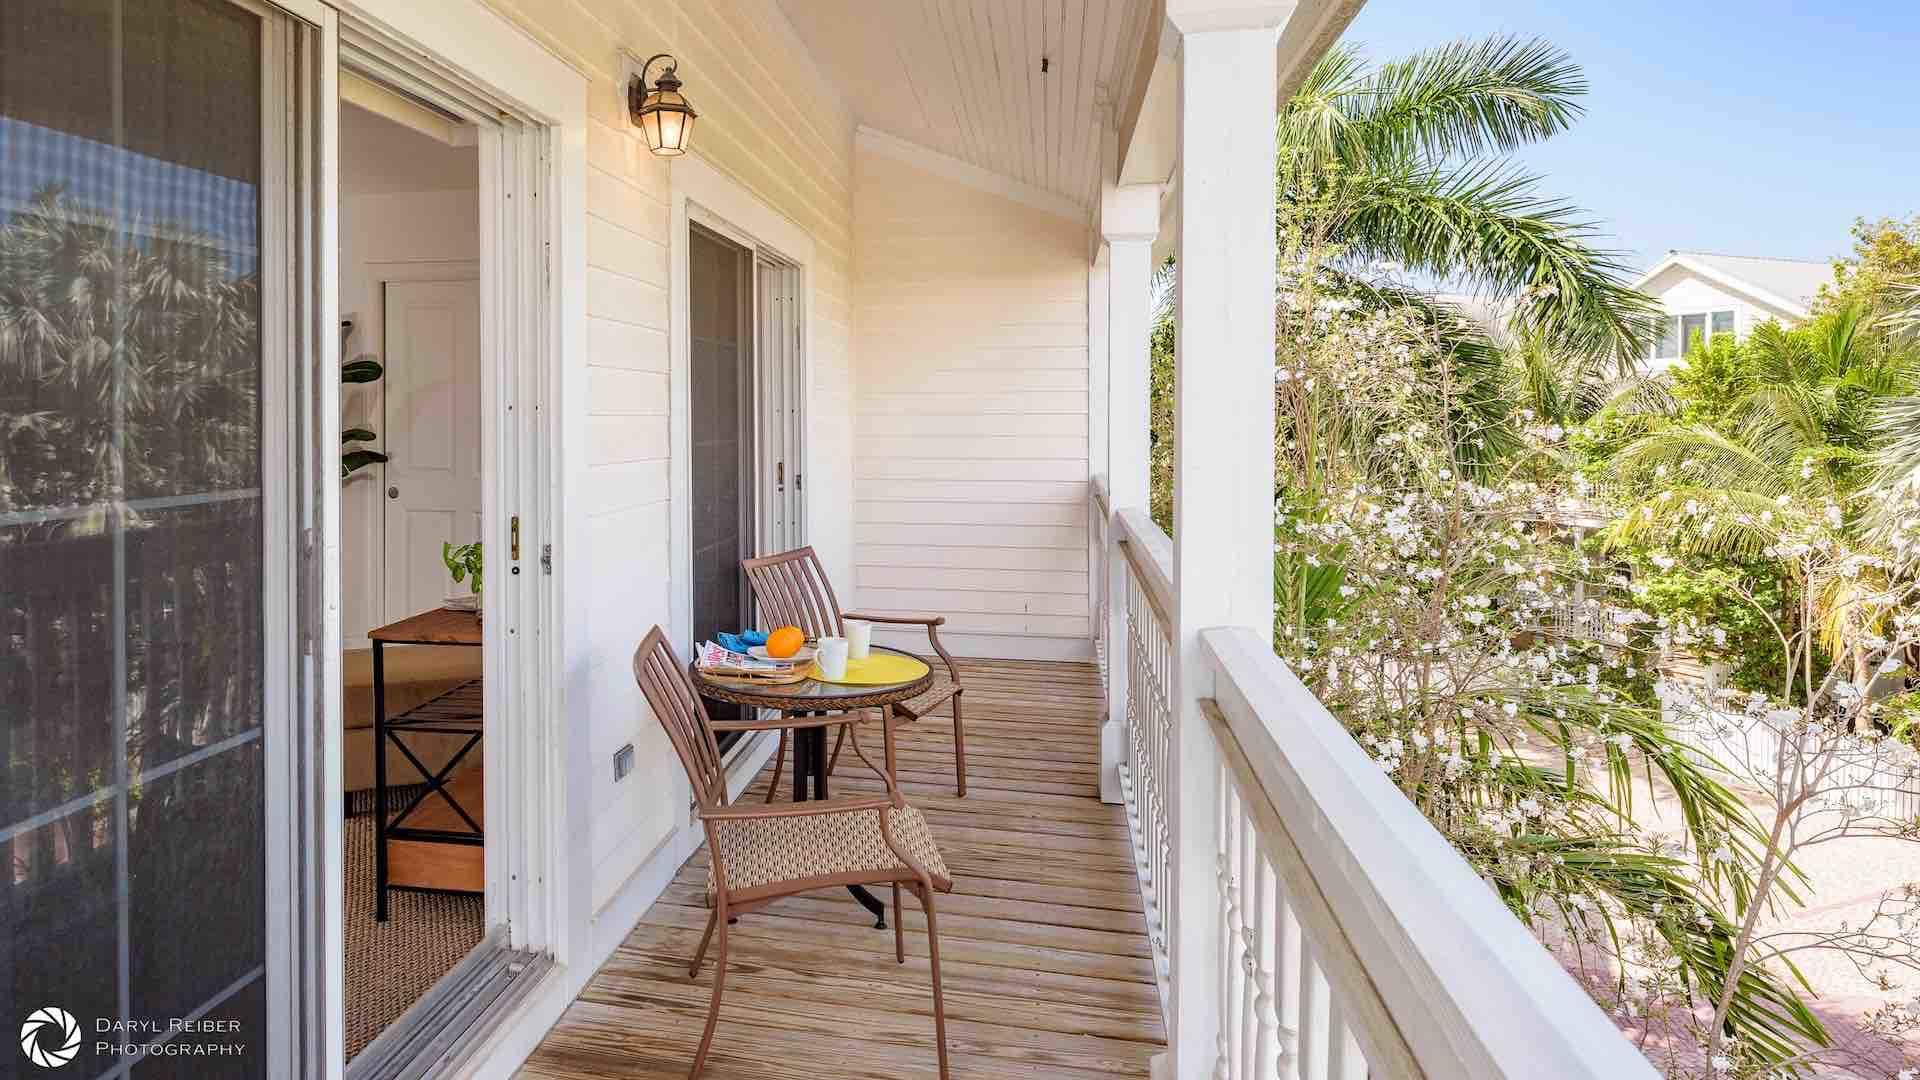 The master bedroom also has a private balcony overlooking the water, with a 3-piece bistro set...